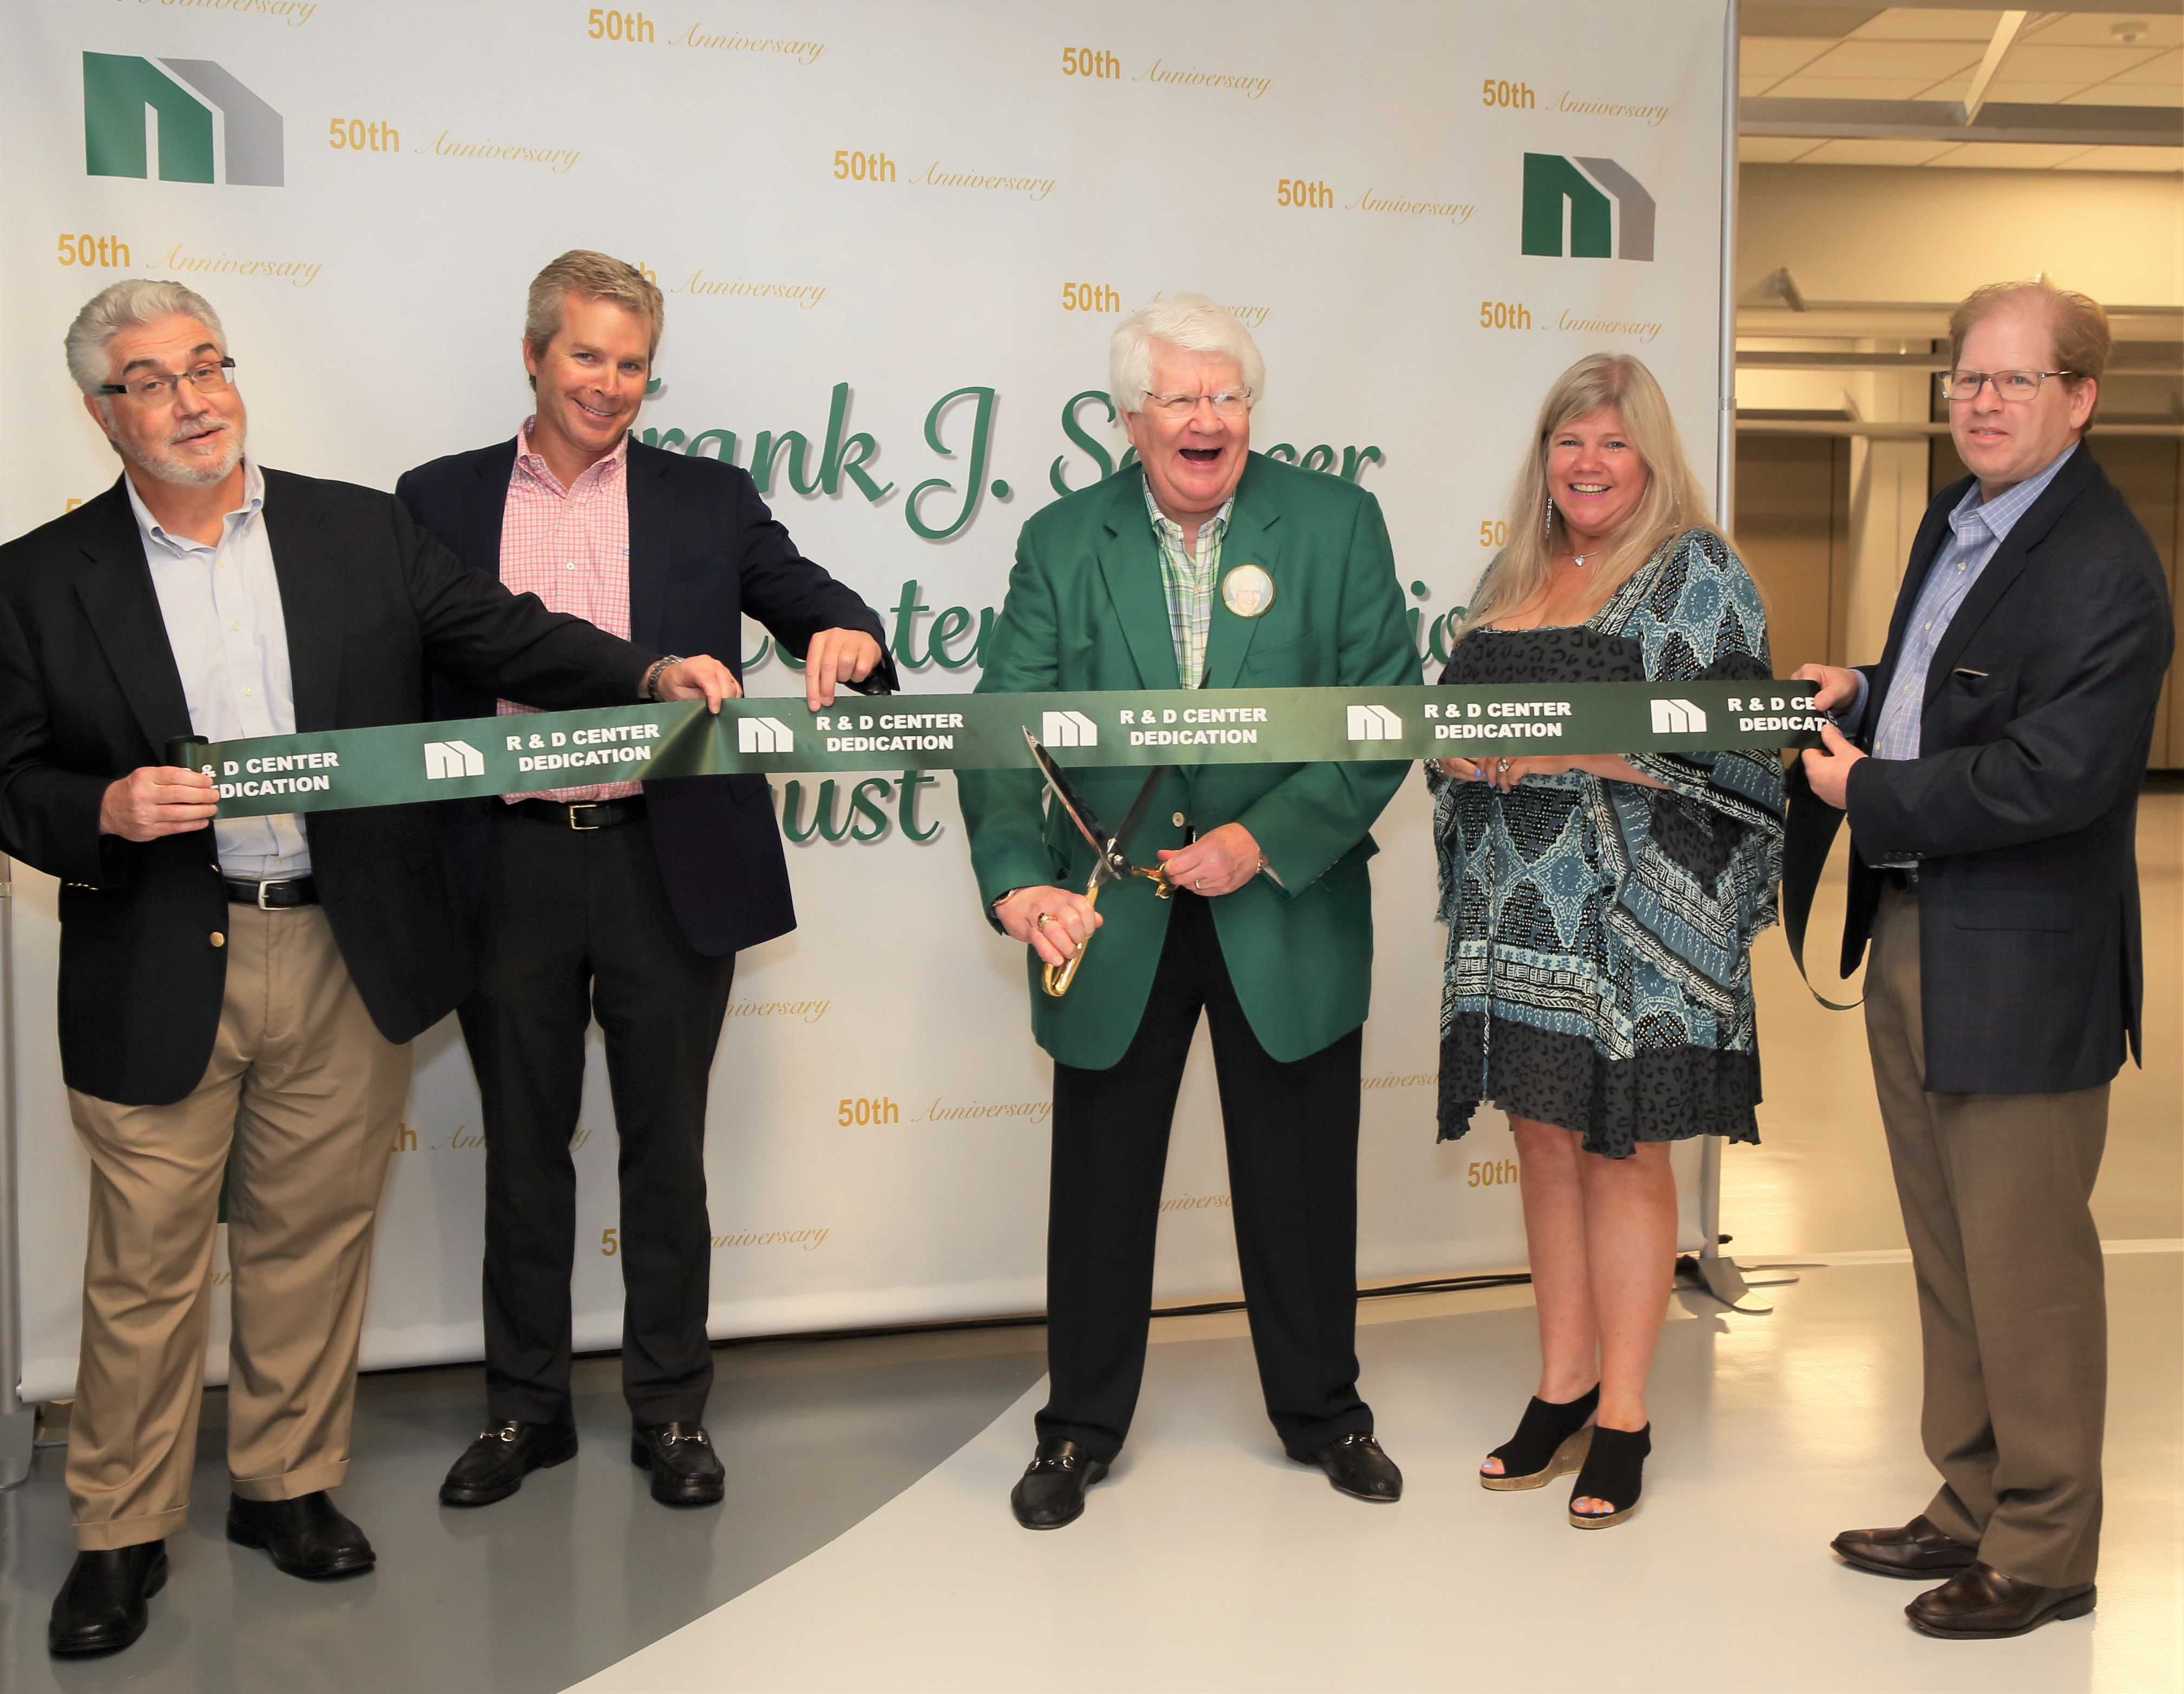 Alfred Carolonza, director of marketing research and strategy; Brian Semcer, president; Frank Semcer Sr., chairman; Paige McCann, shareholder and manufacturing coordinator; Frank Semcer Jr. director of human resources cut the ribbon at Micro's newest Somerset location.